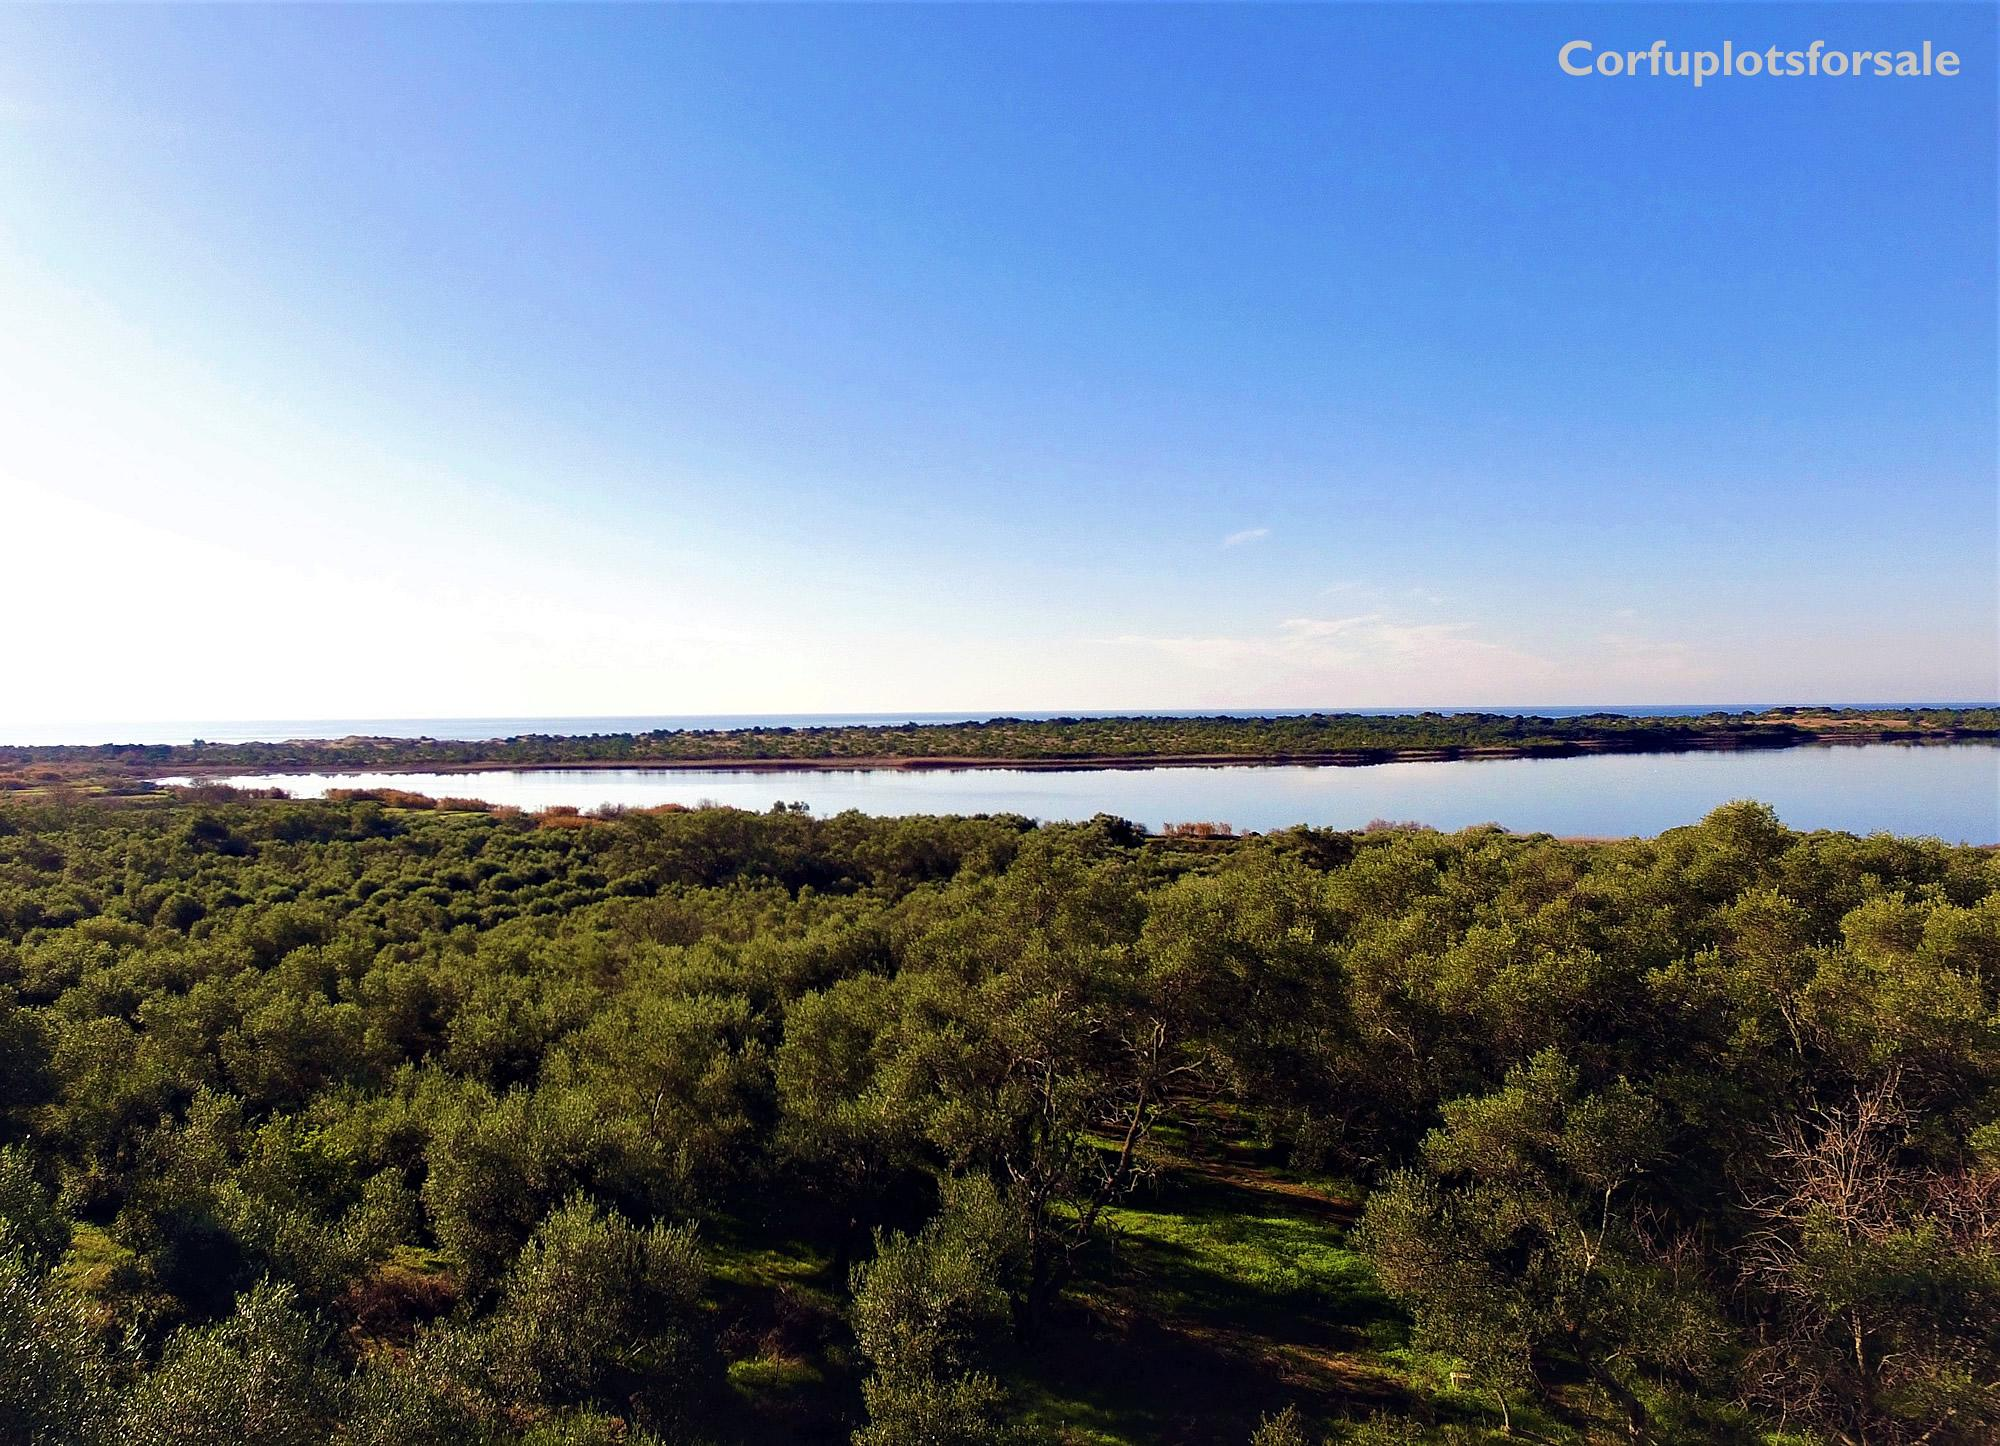 Wonderful piece of land with great view to a beautiful lake